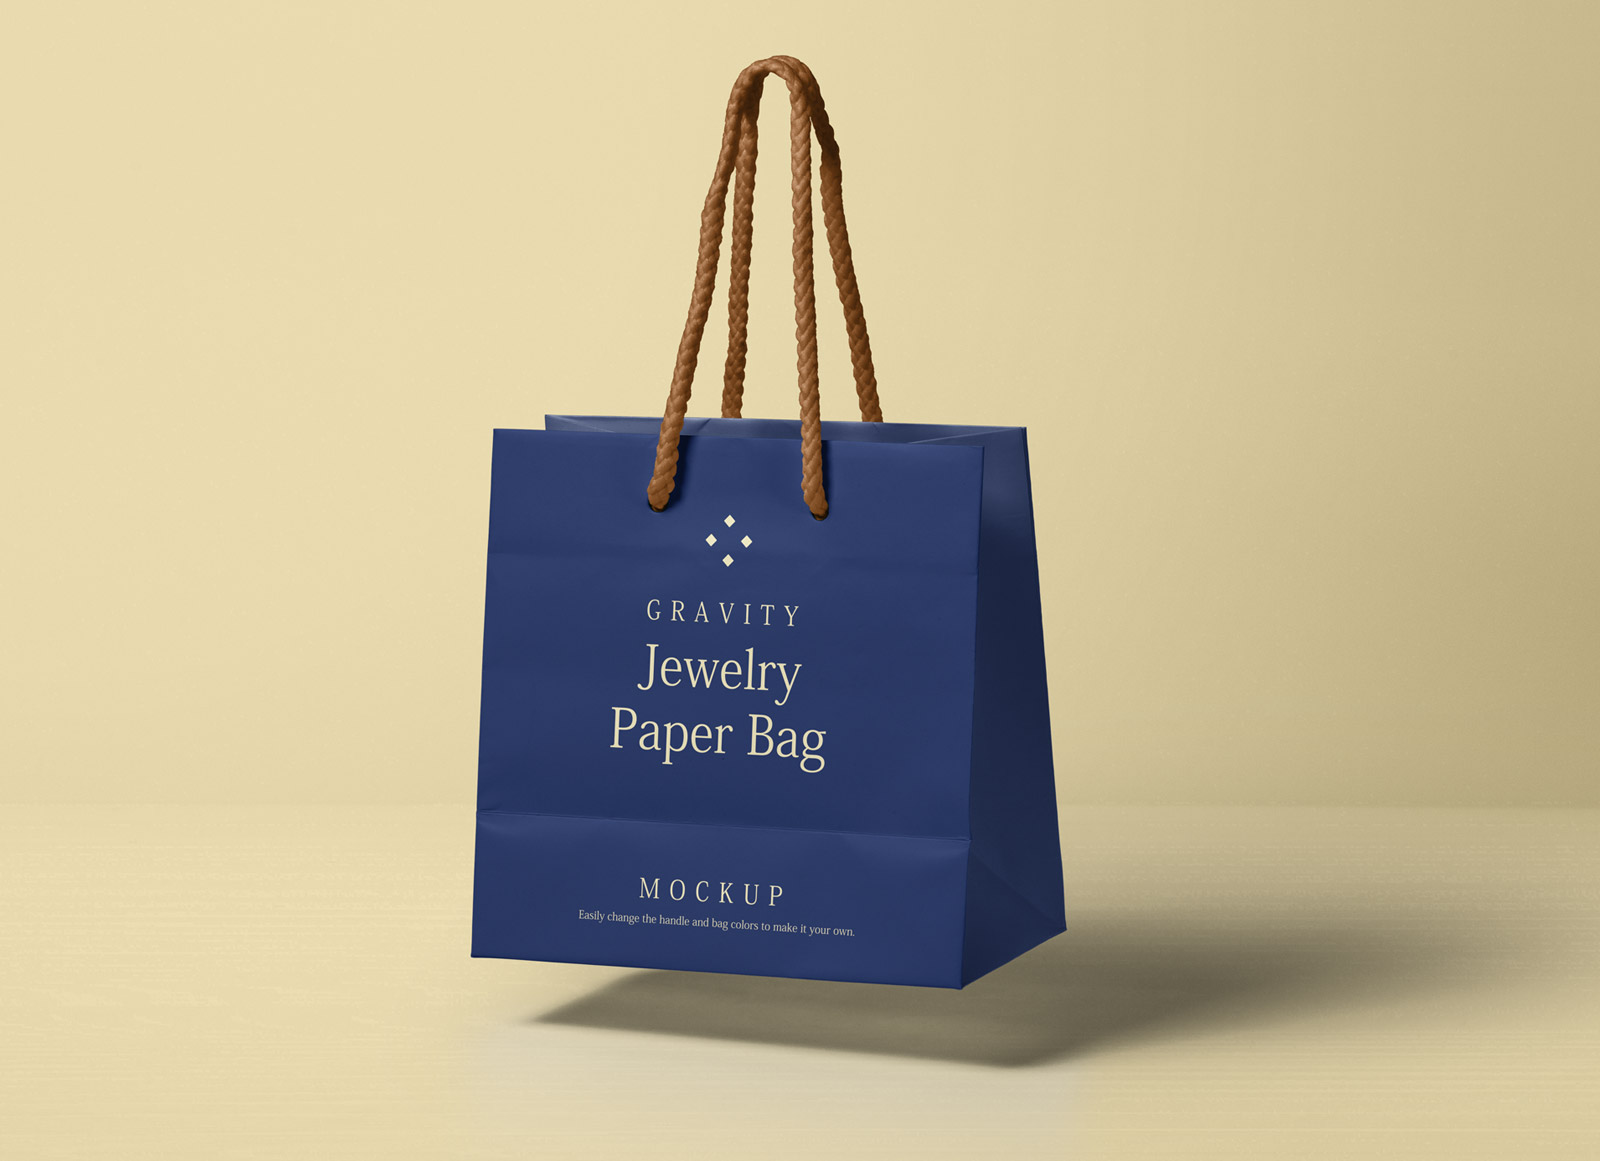 Free-Gravity-Paper-Shopping-Bag-Packaging-Mockup-PSD-File